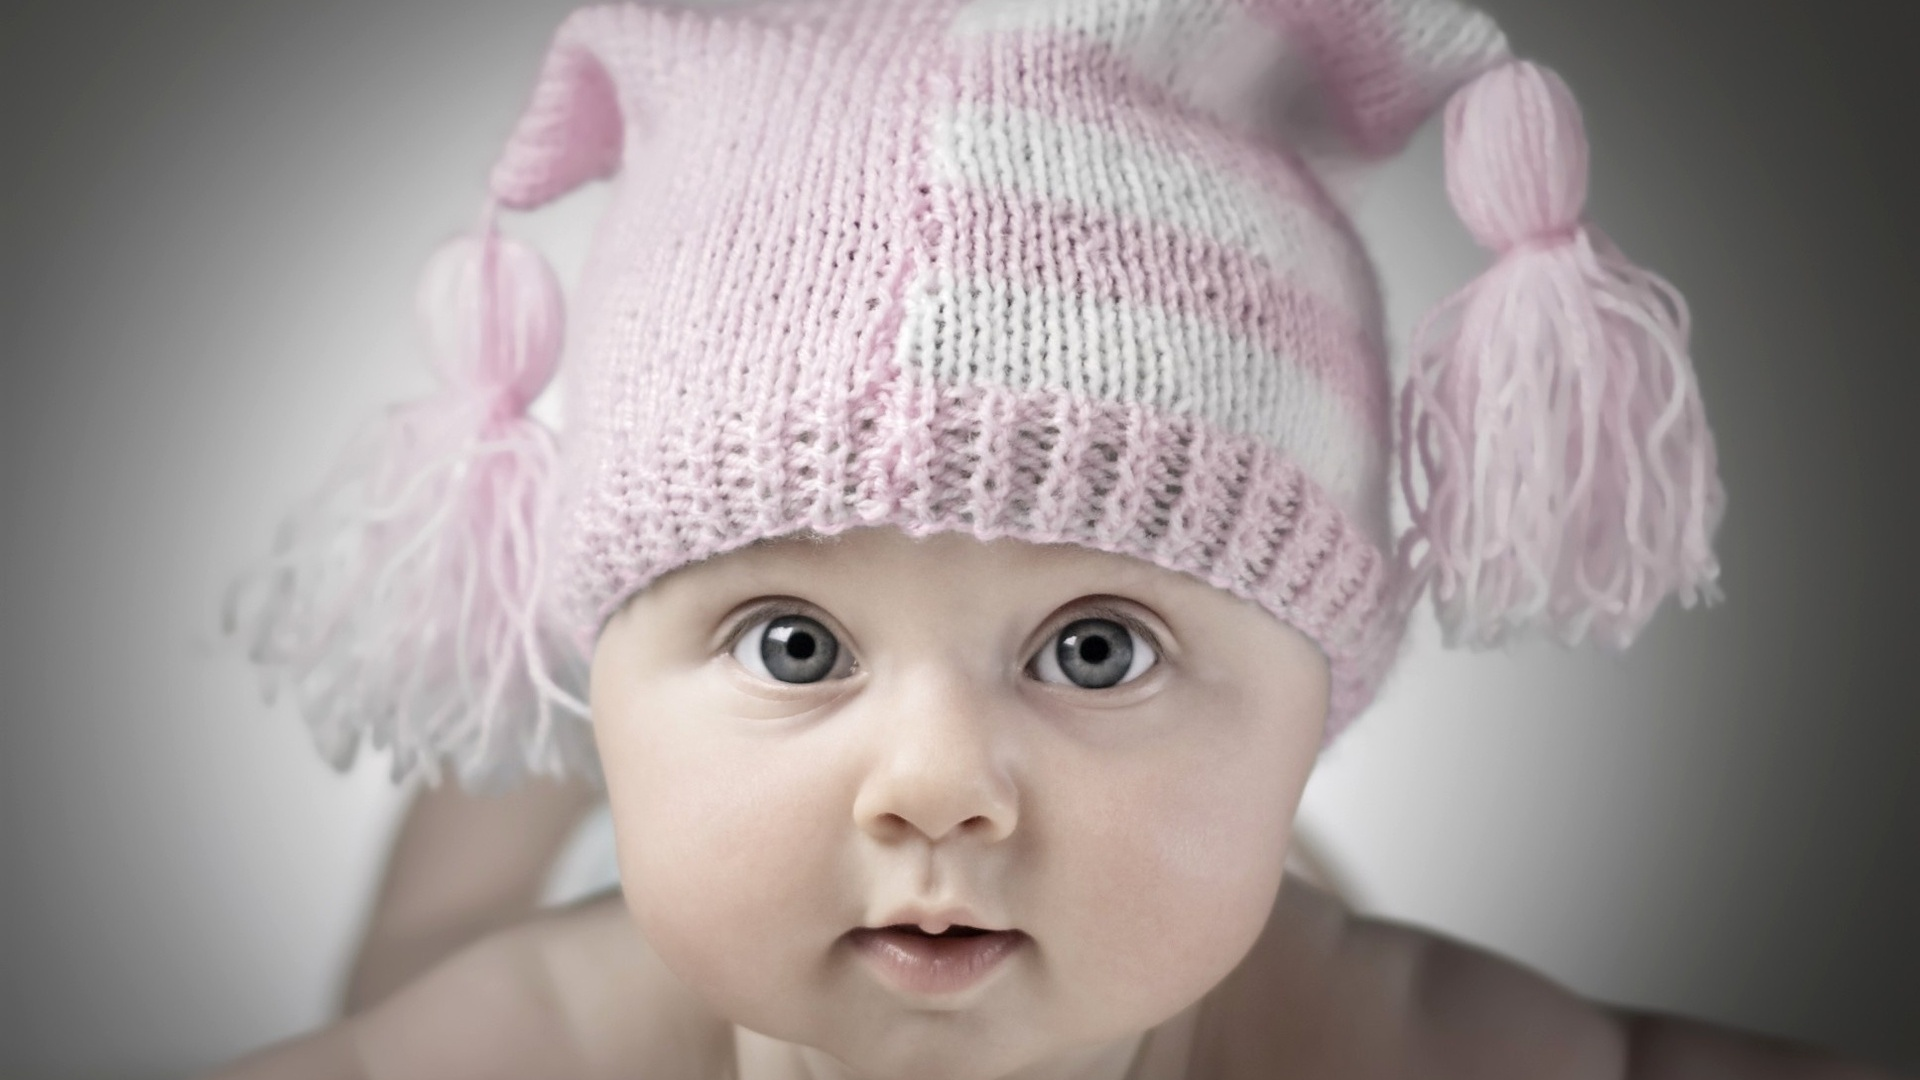 Cute Baby Wallpapers 1920x1080